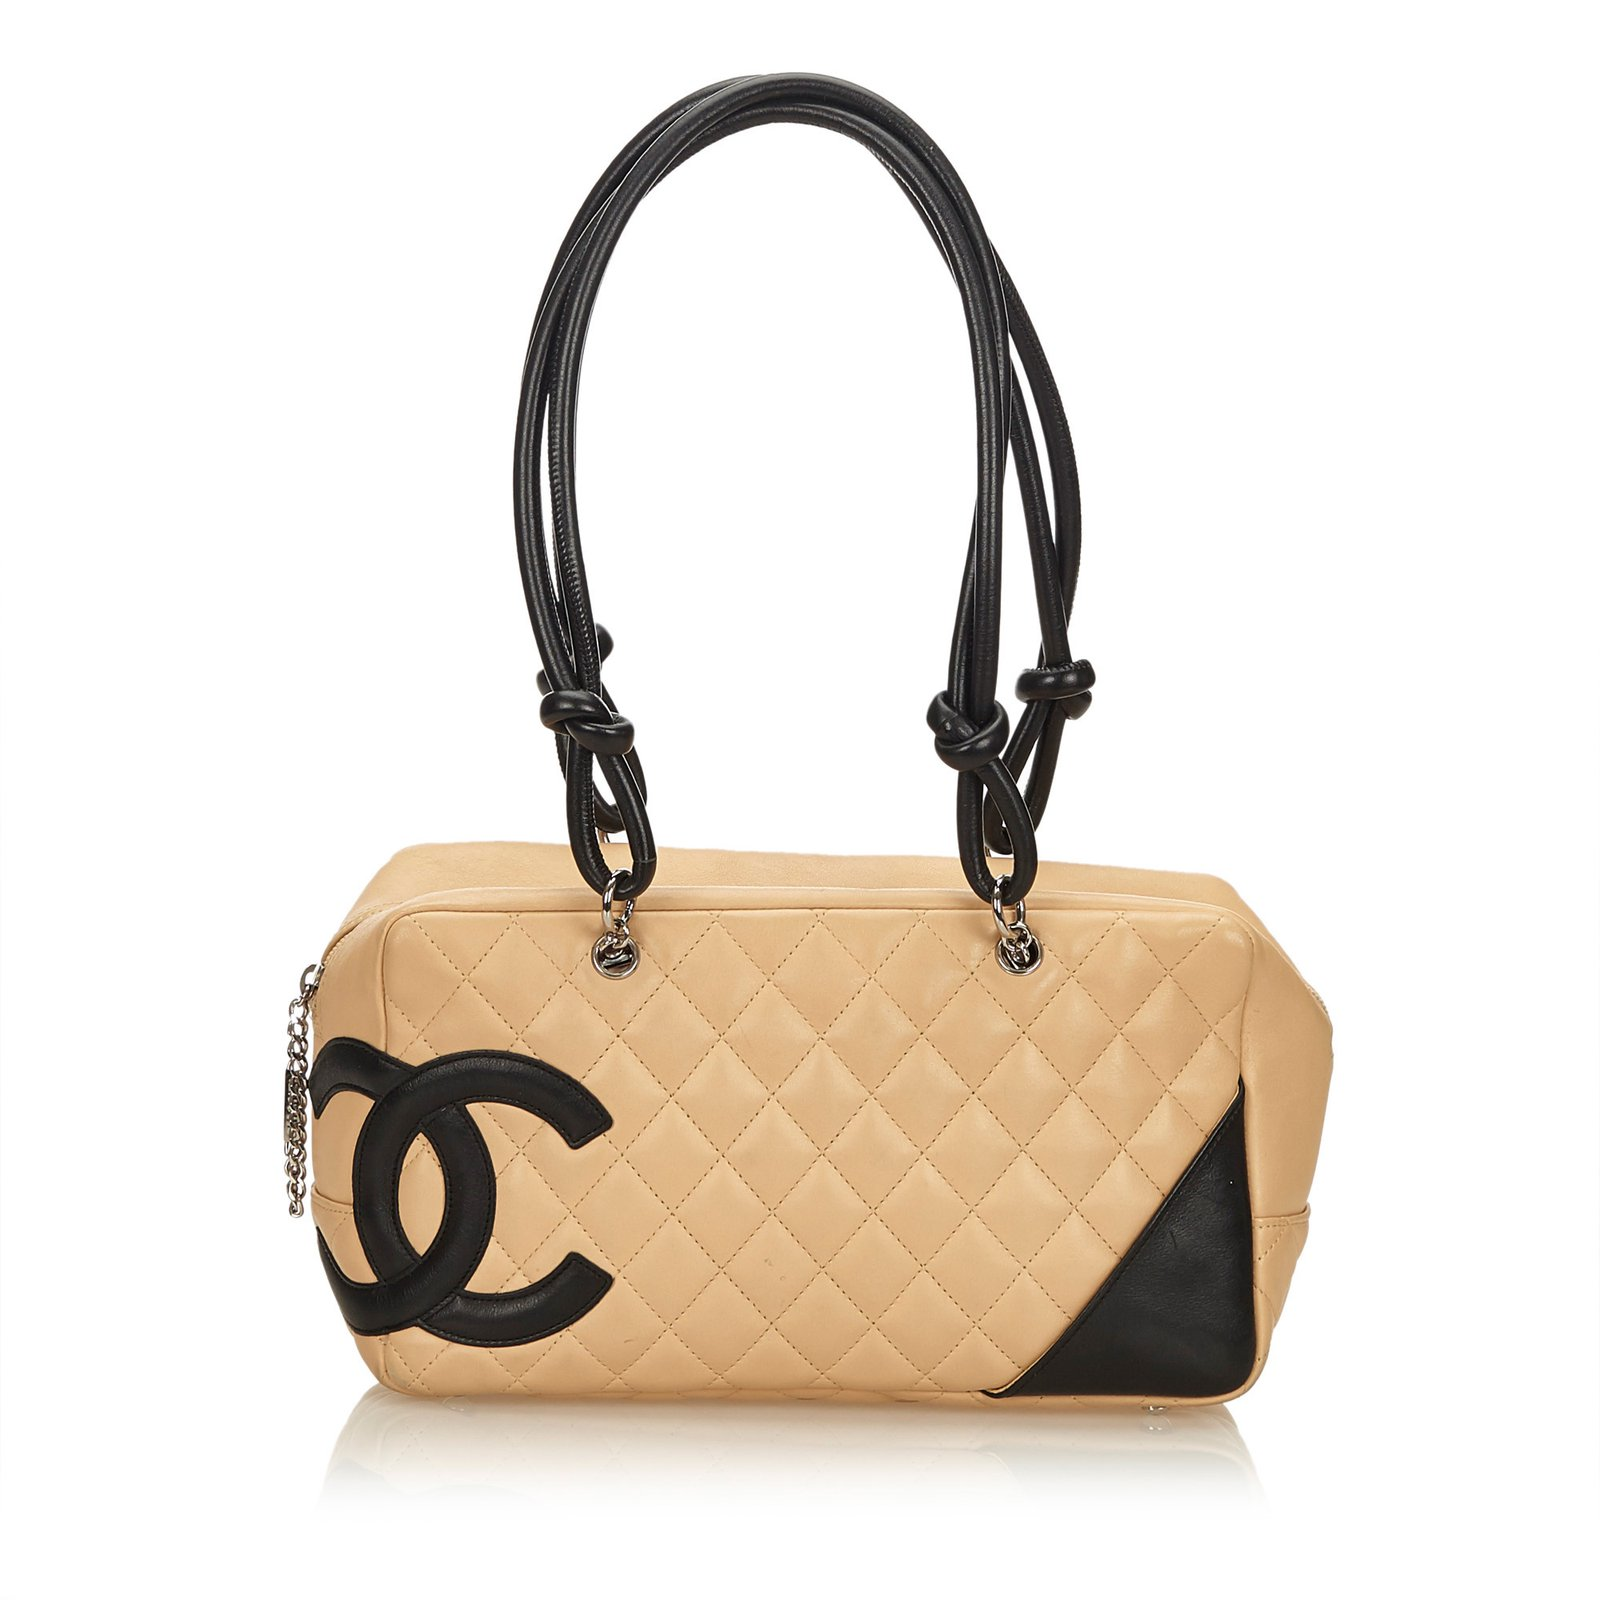 4ea5d2a14d3e Chanel Cambon Shoulder Bag Line Handbags Leather Brown,Black,Beige ref.91329